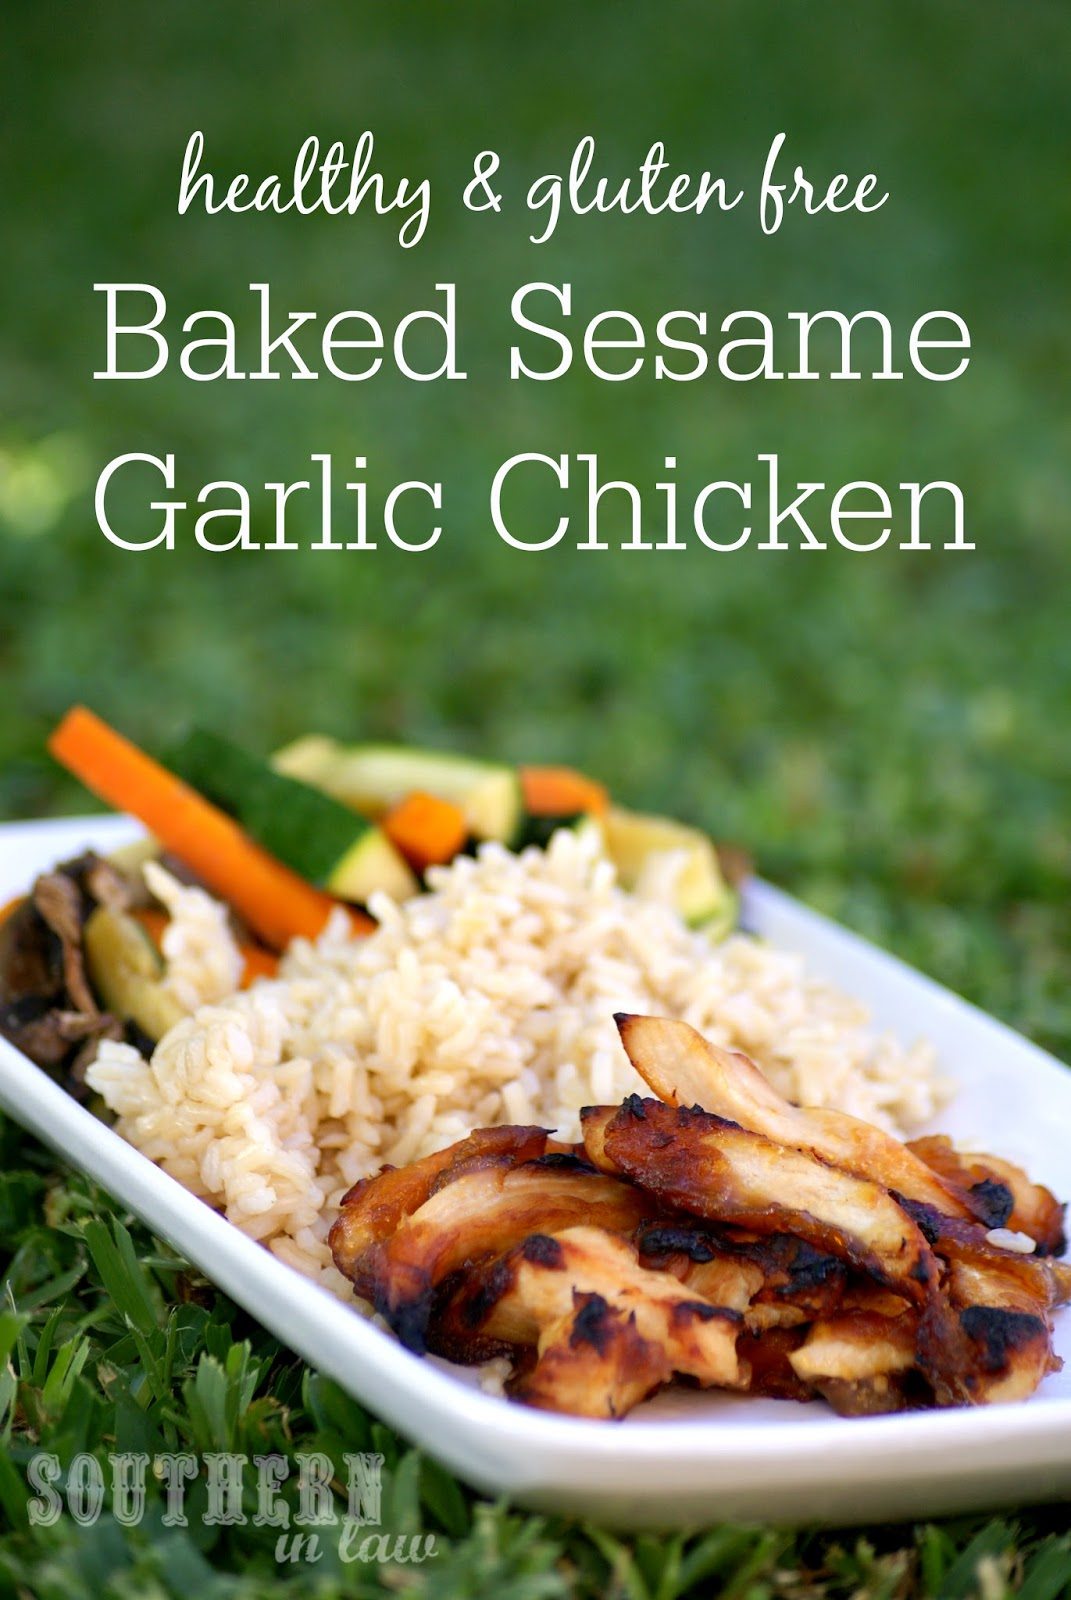 Healthy Baked Sesame Garlic Chicken Recipe with Stir Fried Vegetables - gluten free, low fat, low carb, healthy, sesame oil, asian recipes, dinner, chicken breast, high protein, lunch